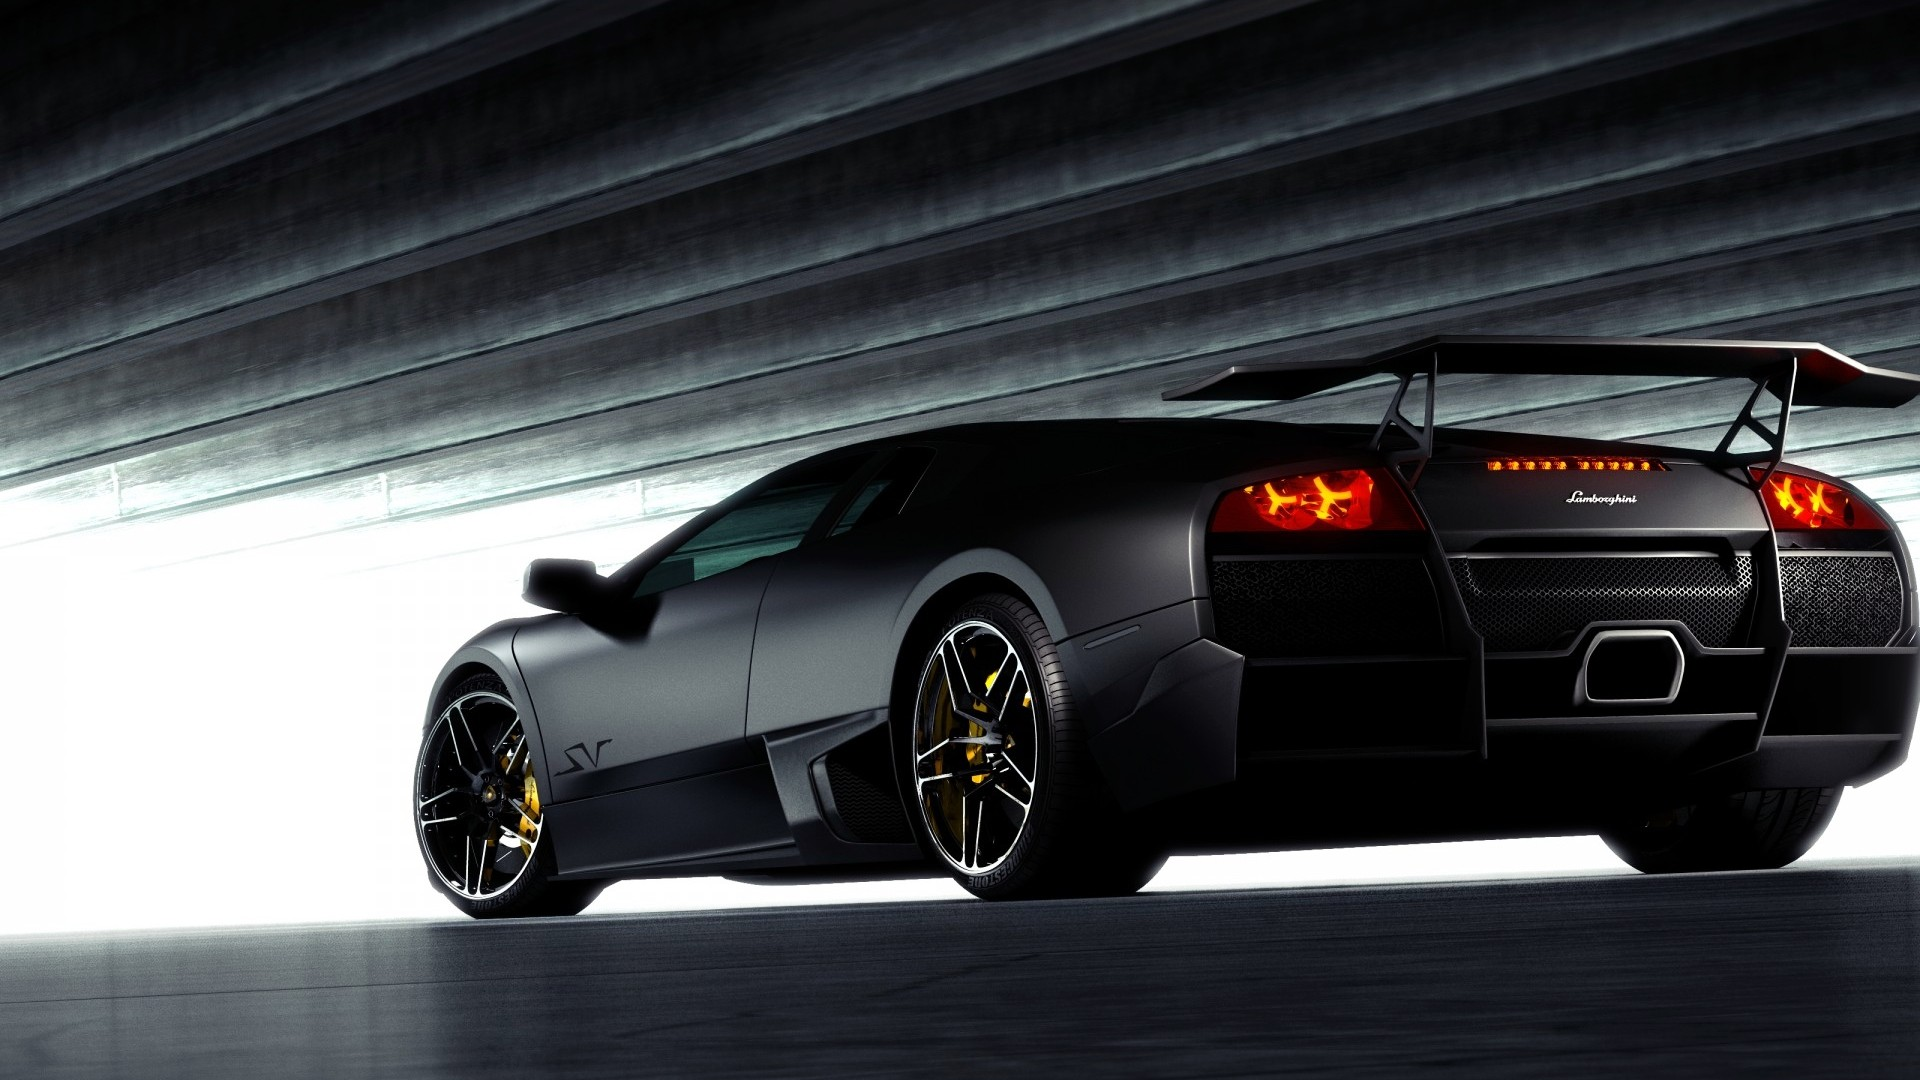 black-lamborghini-back-view-hd-wallpapers-1080p-cars – orlando car